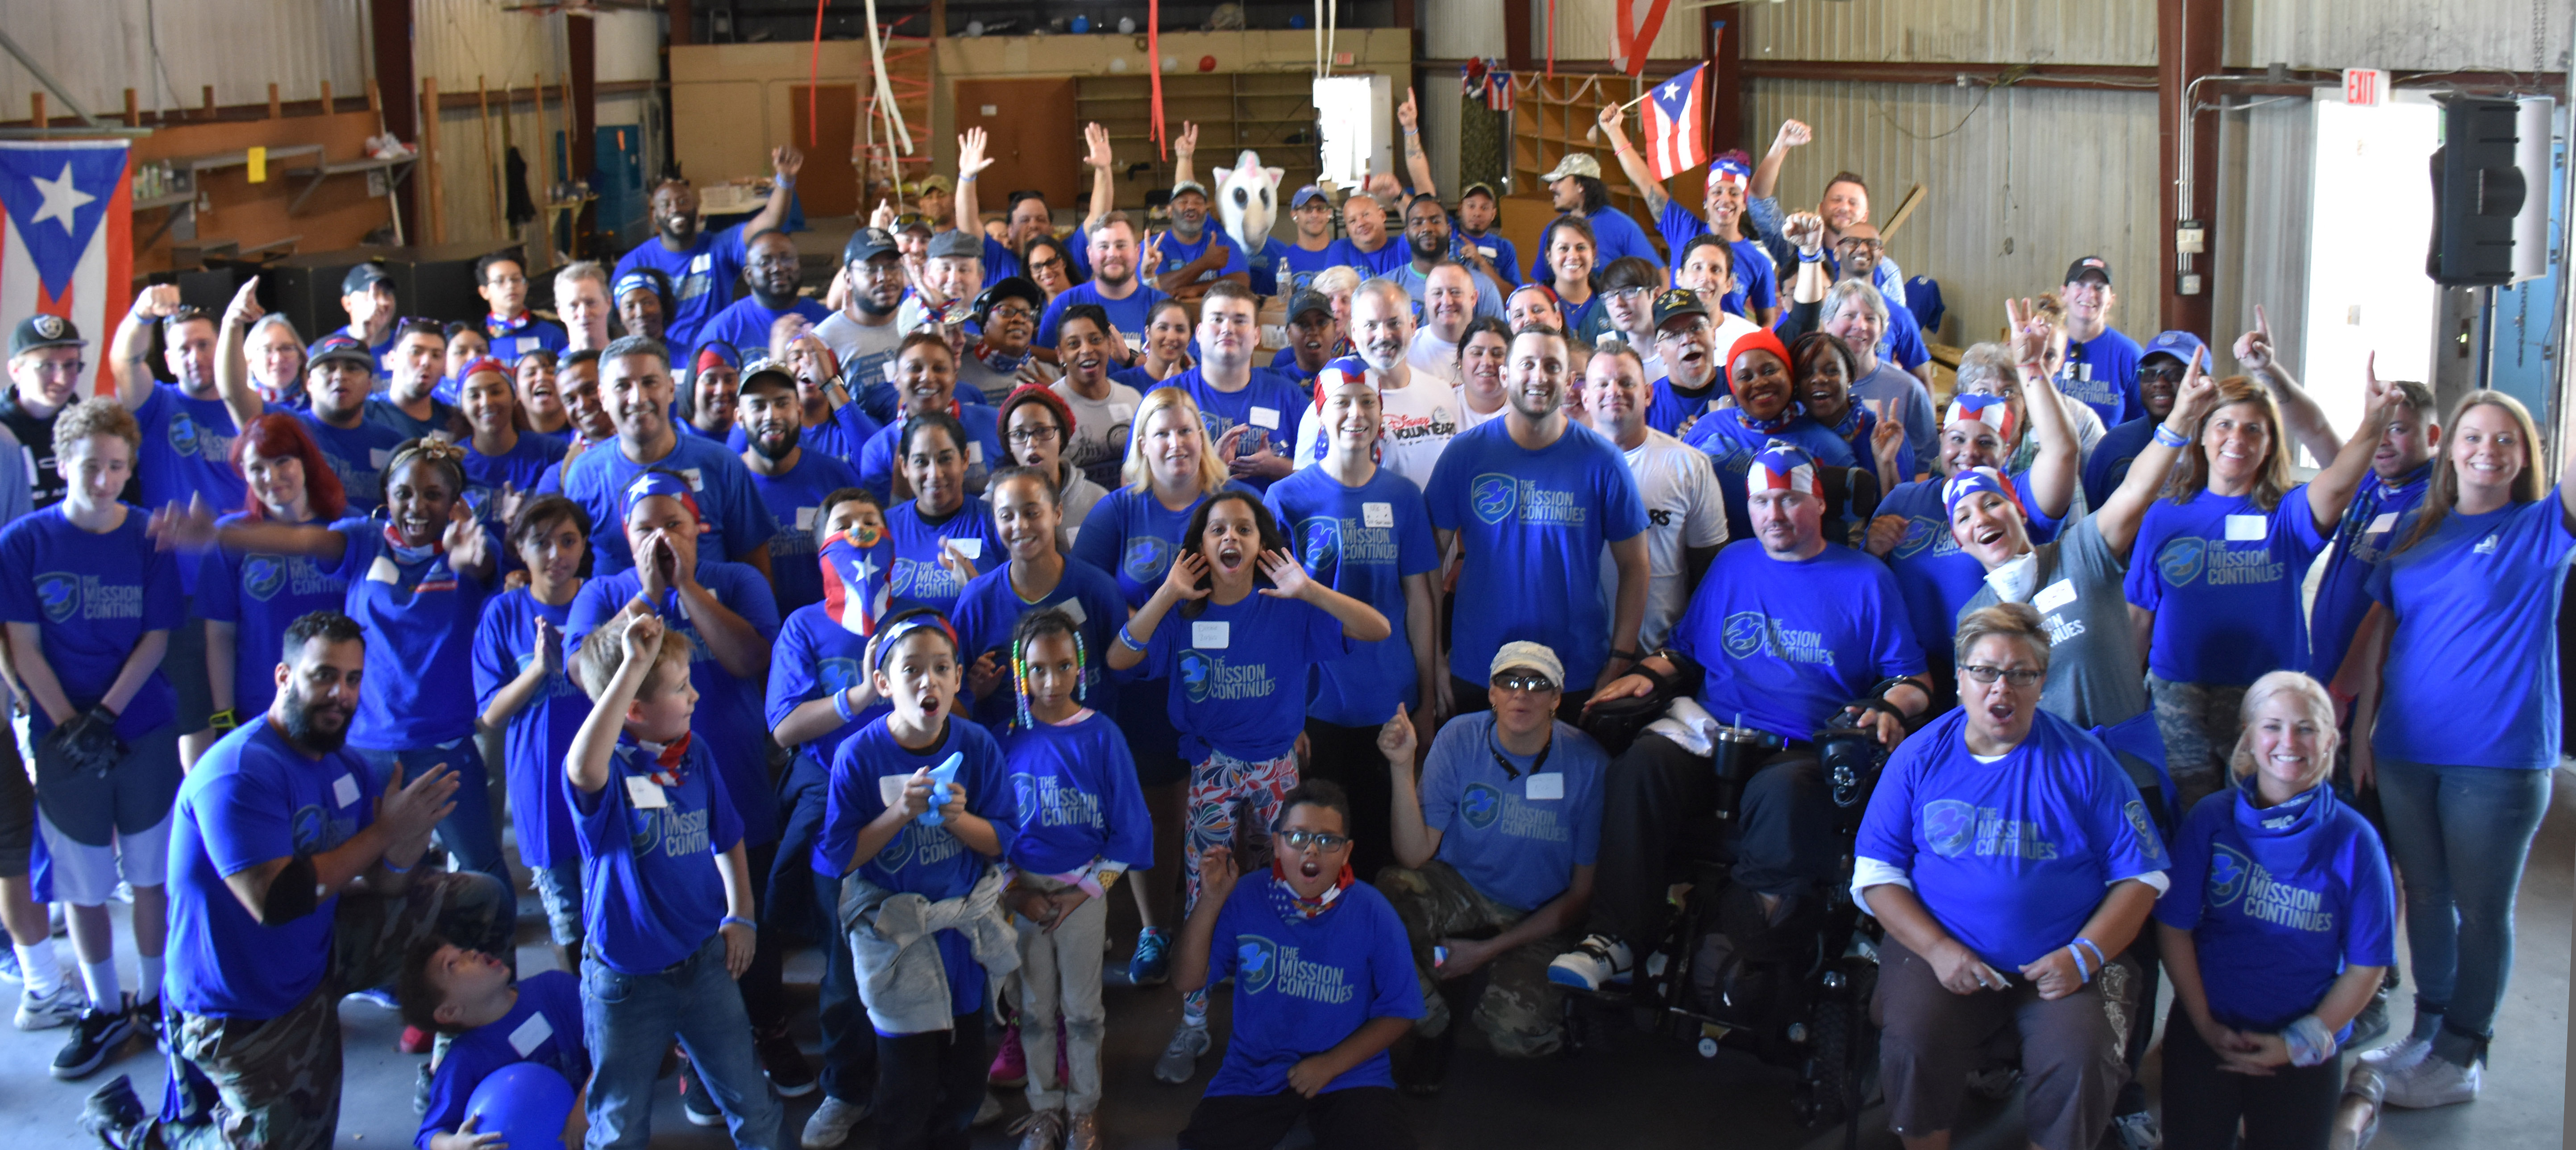 Six veteran-led service platoons and over 100 veterans from across Florida and Puerto Rico rallied in Orlando to help families displaced by Hurricane Maria in honor of Veterans Day as they transition to long-term housing.